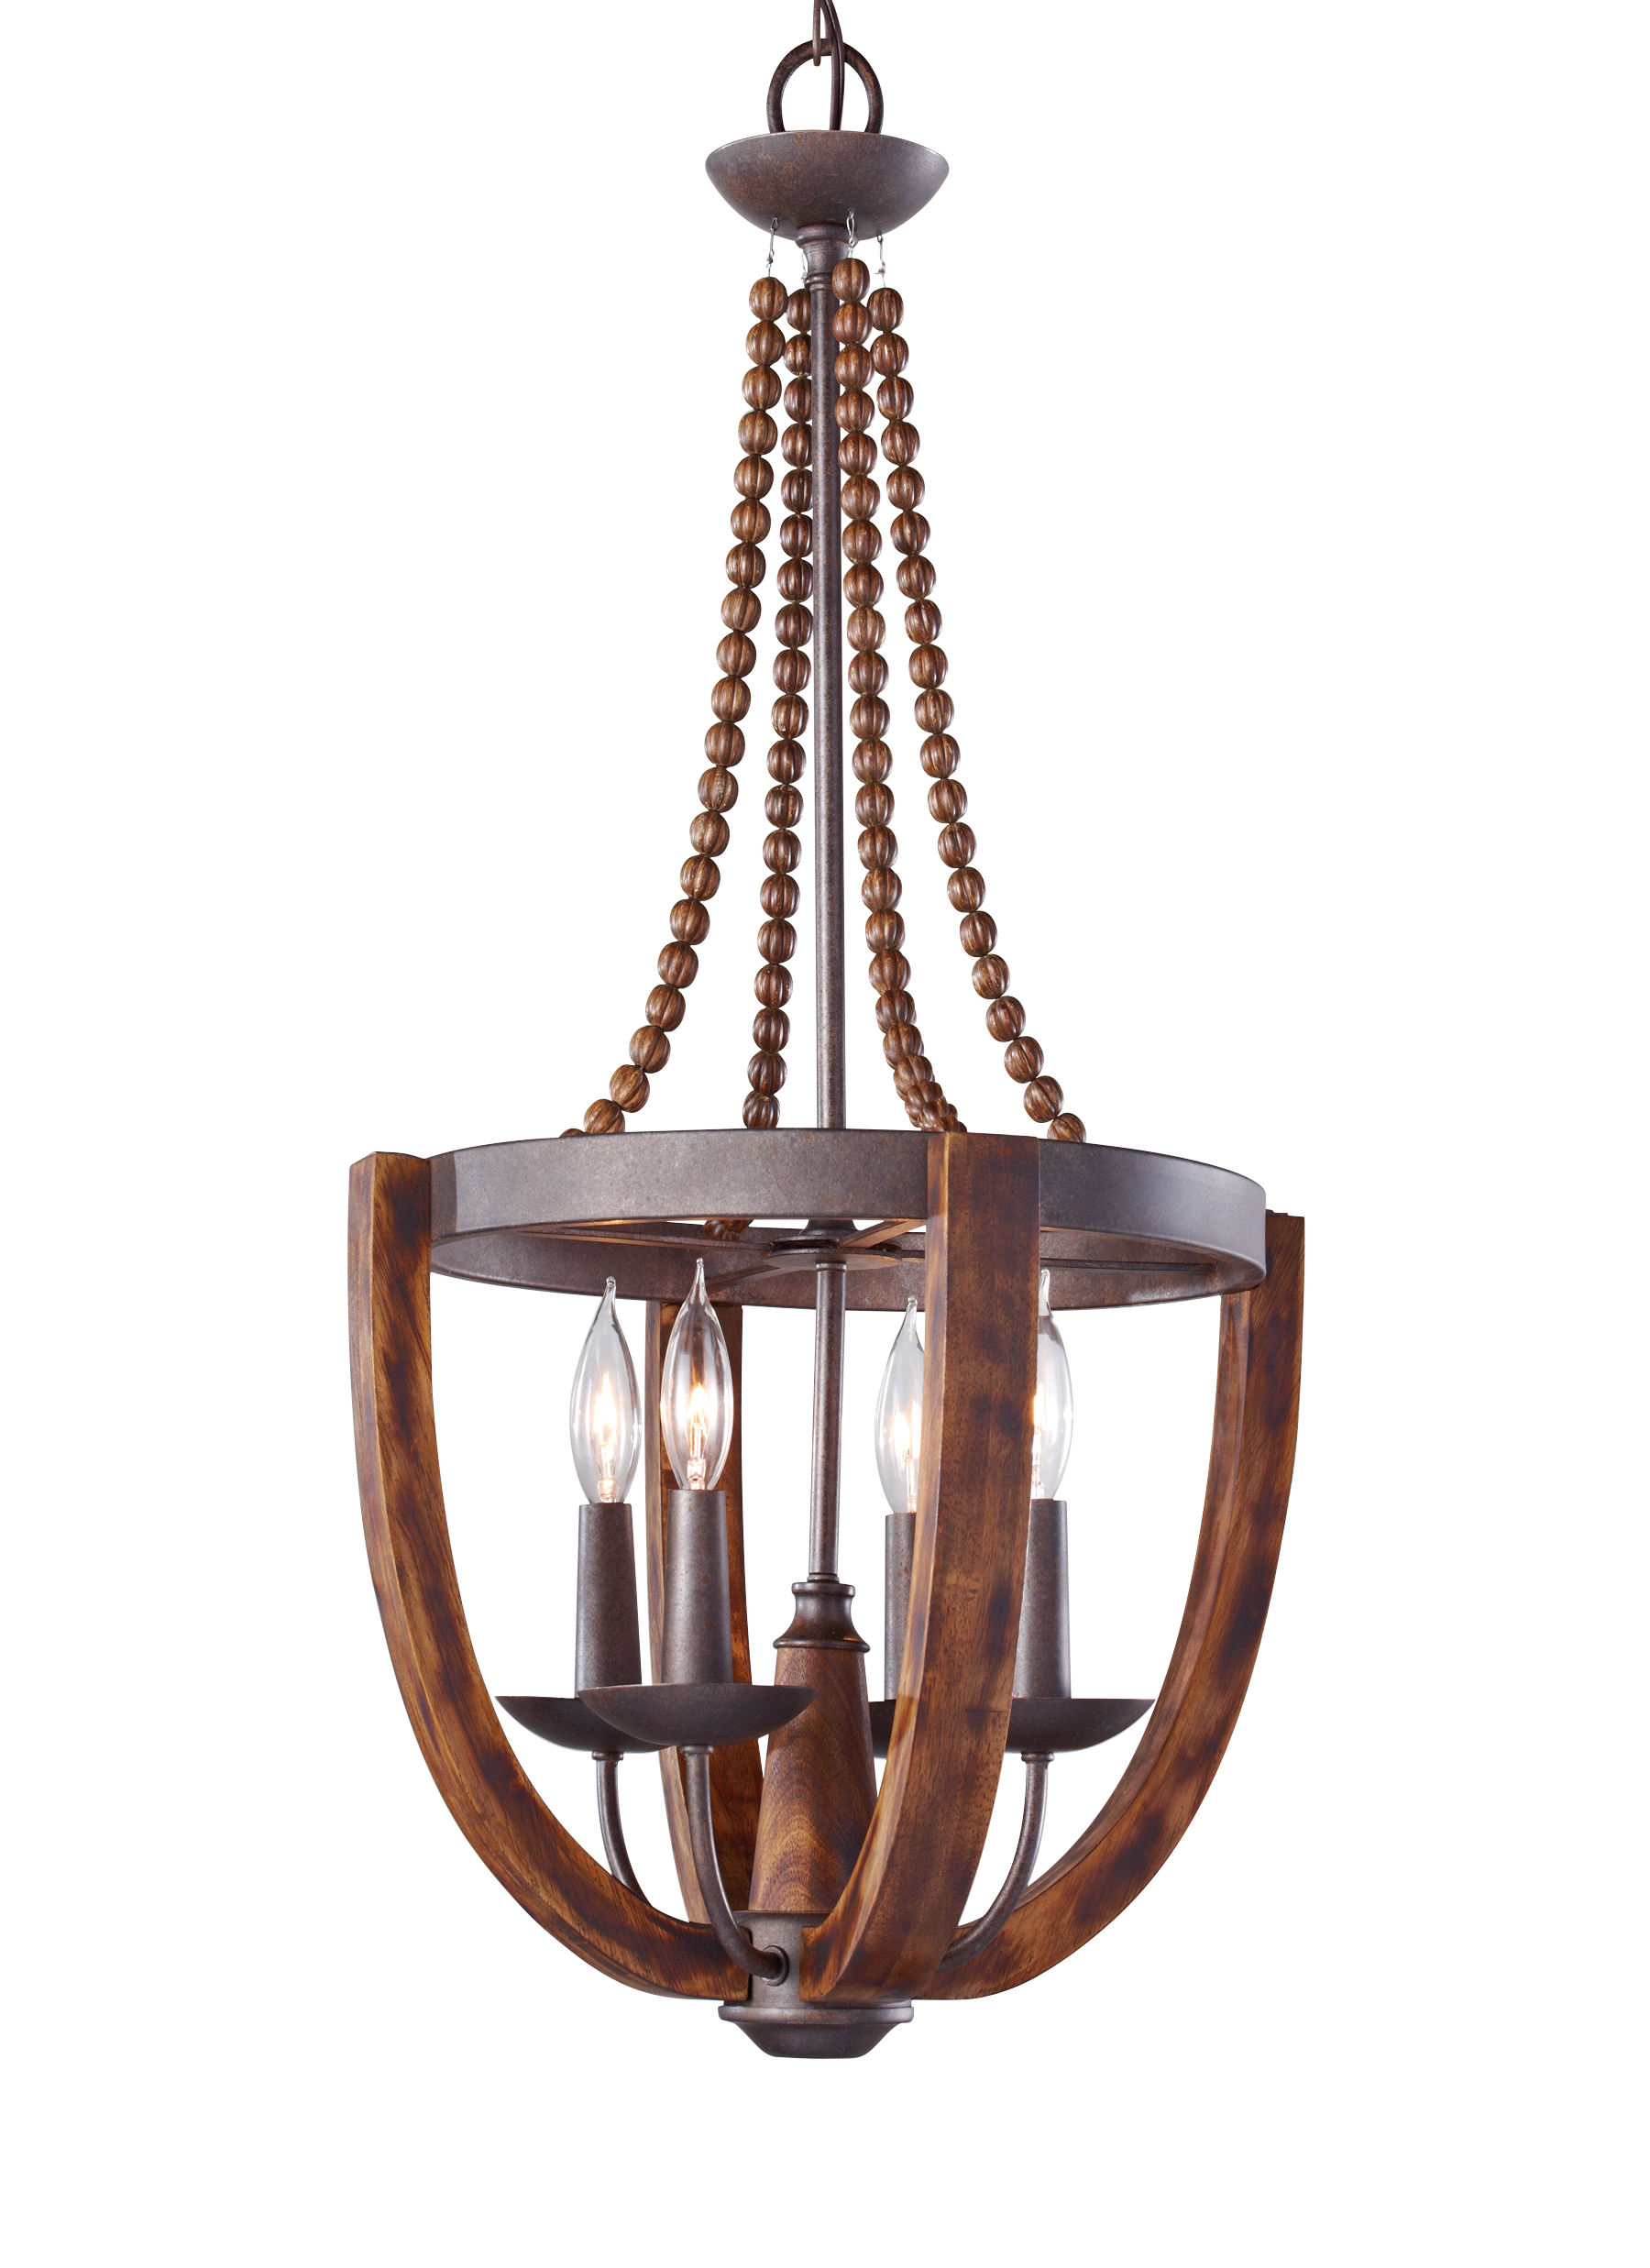 F2753 4RI BWD 4 Light Chandelier Rustic Iron Burnished Wood